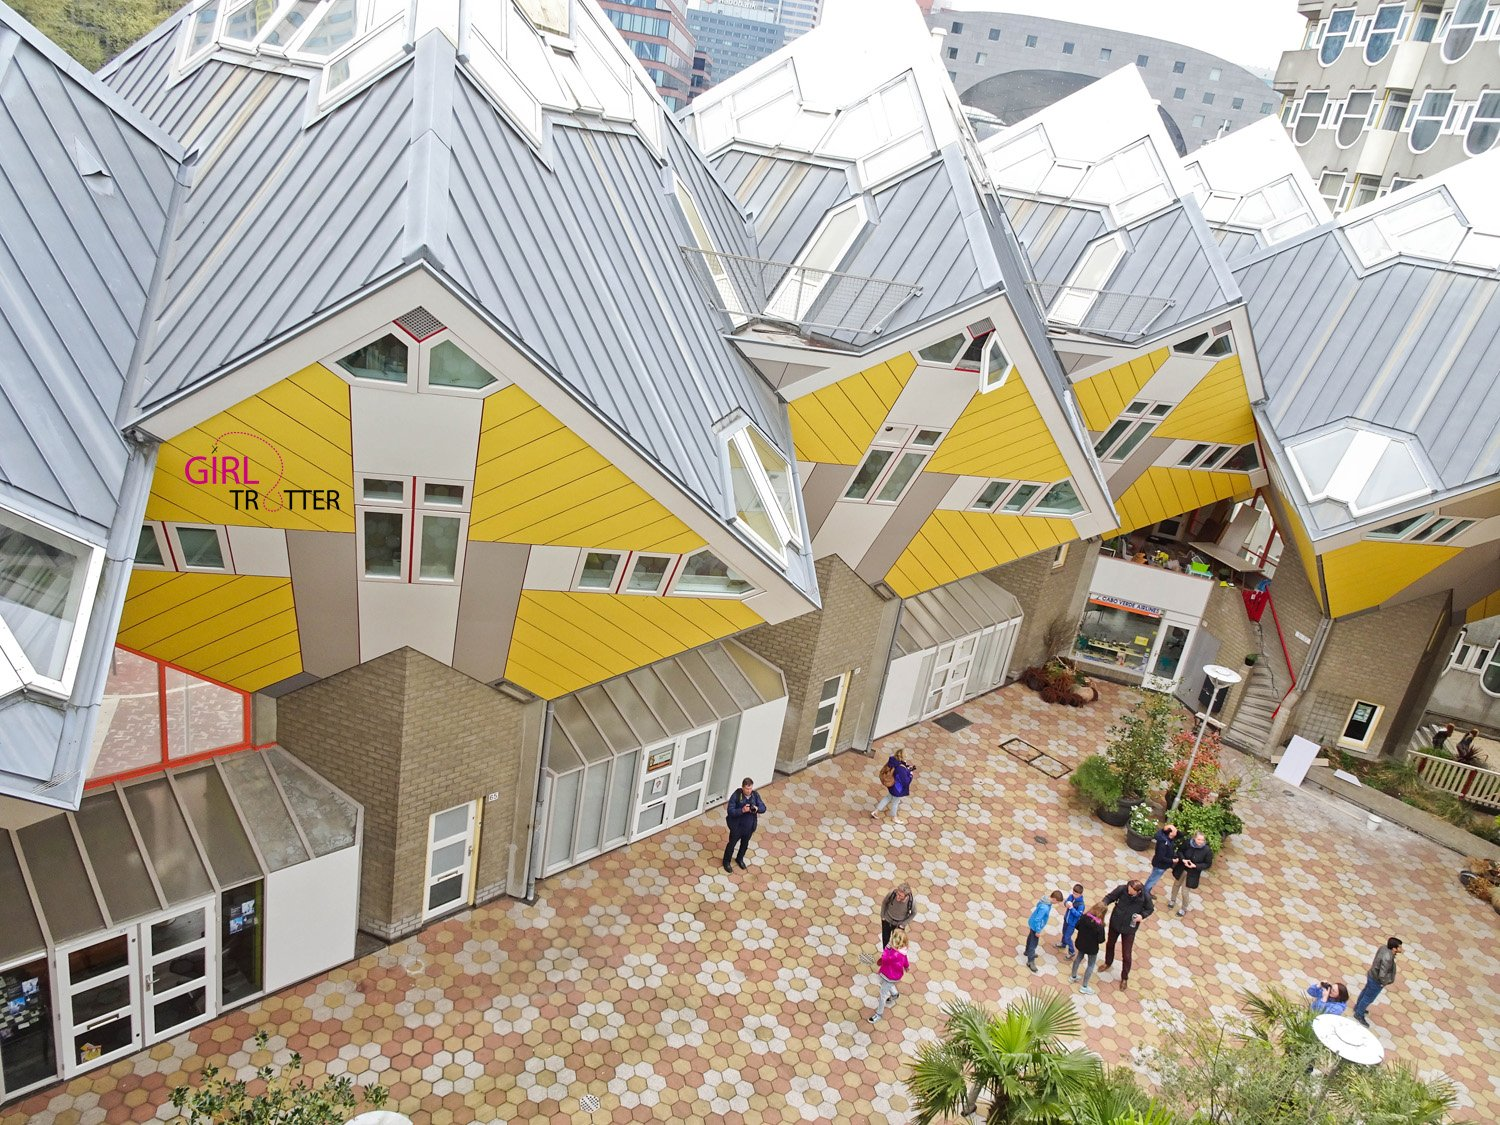 Roadtrip aux pays-bas hollande - Rotterdam cube houses